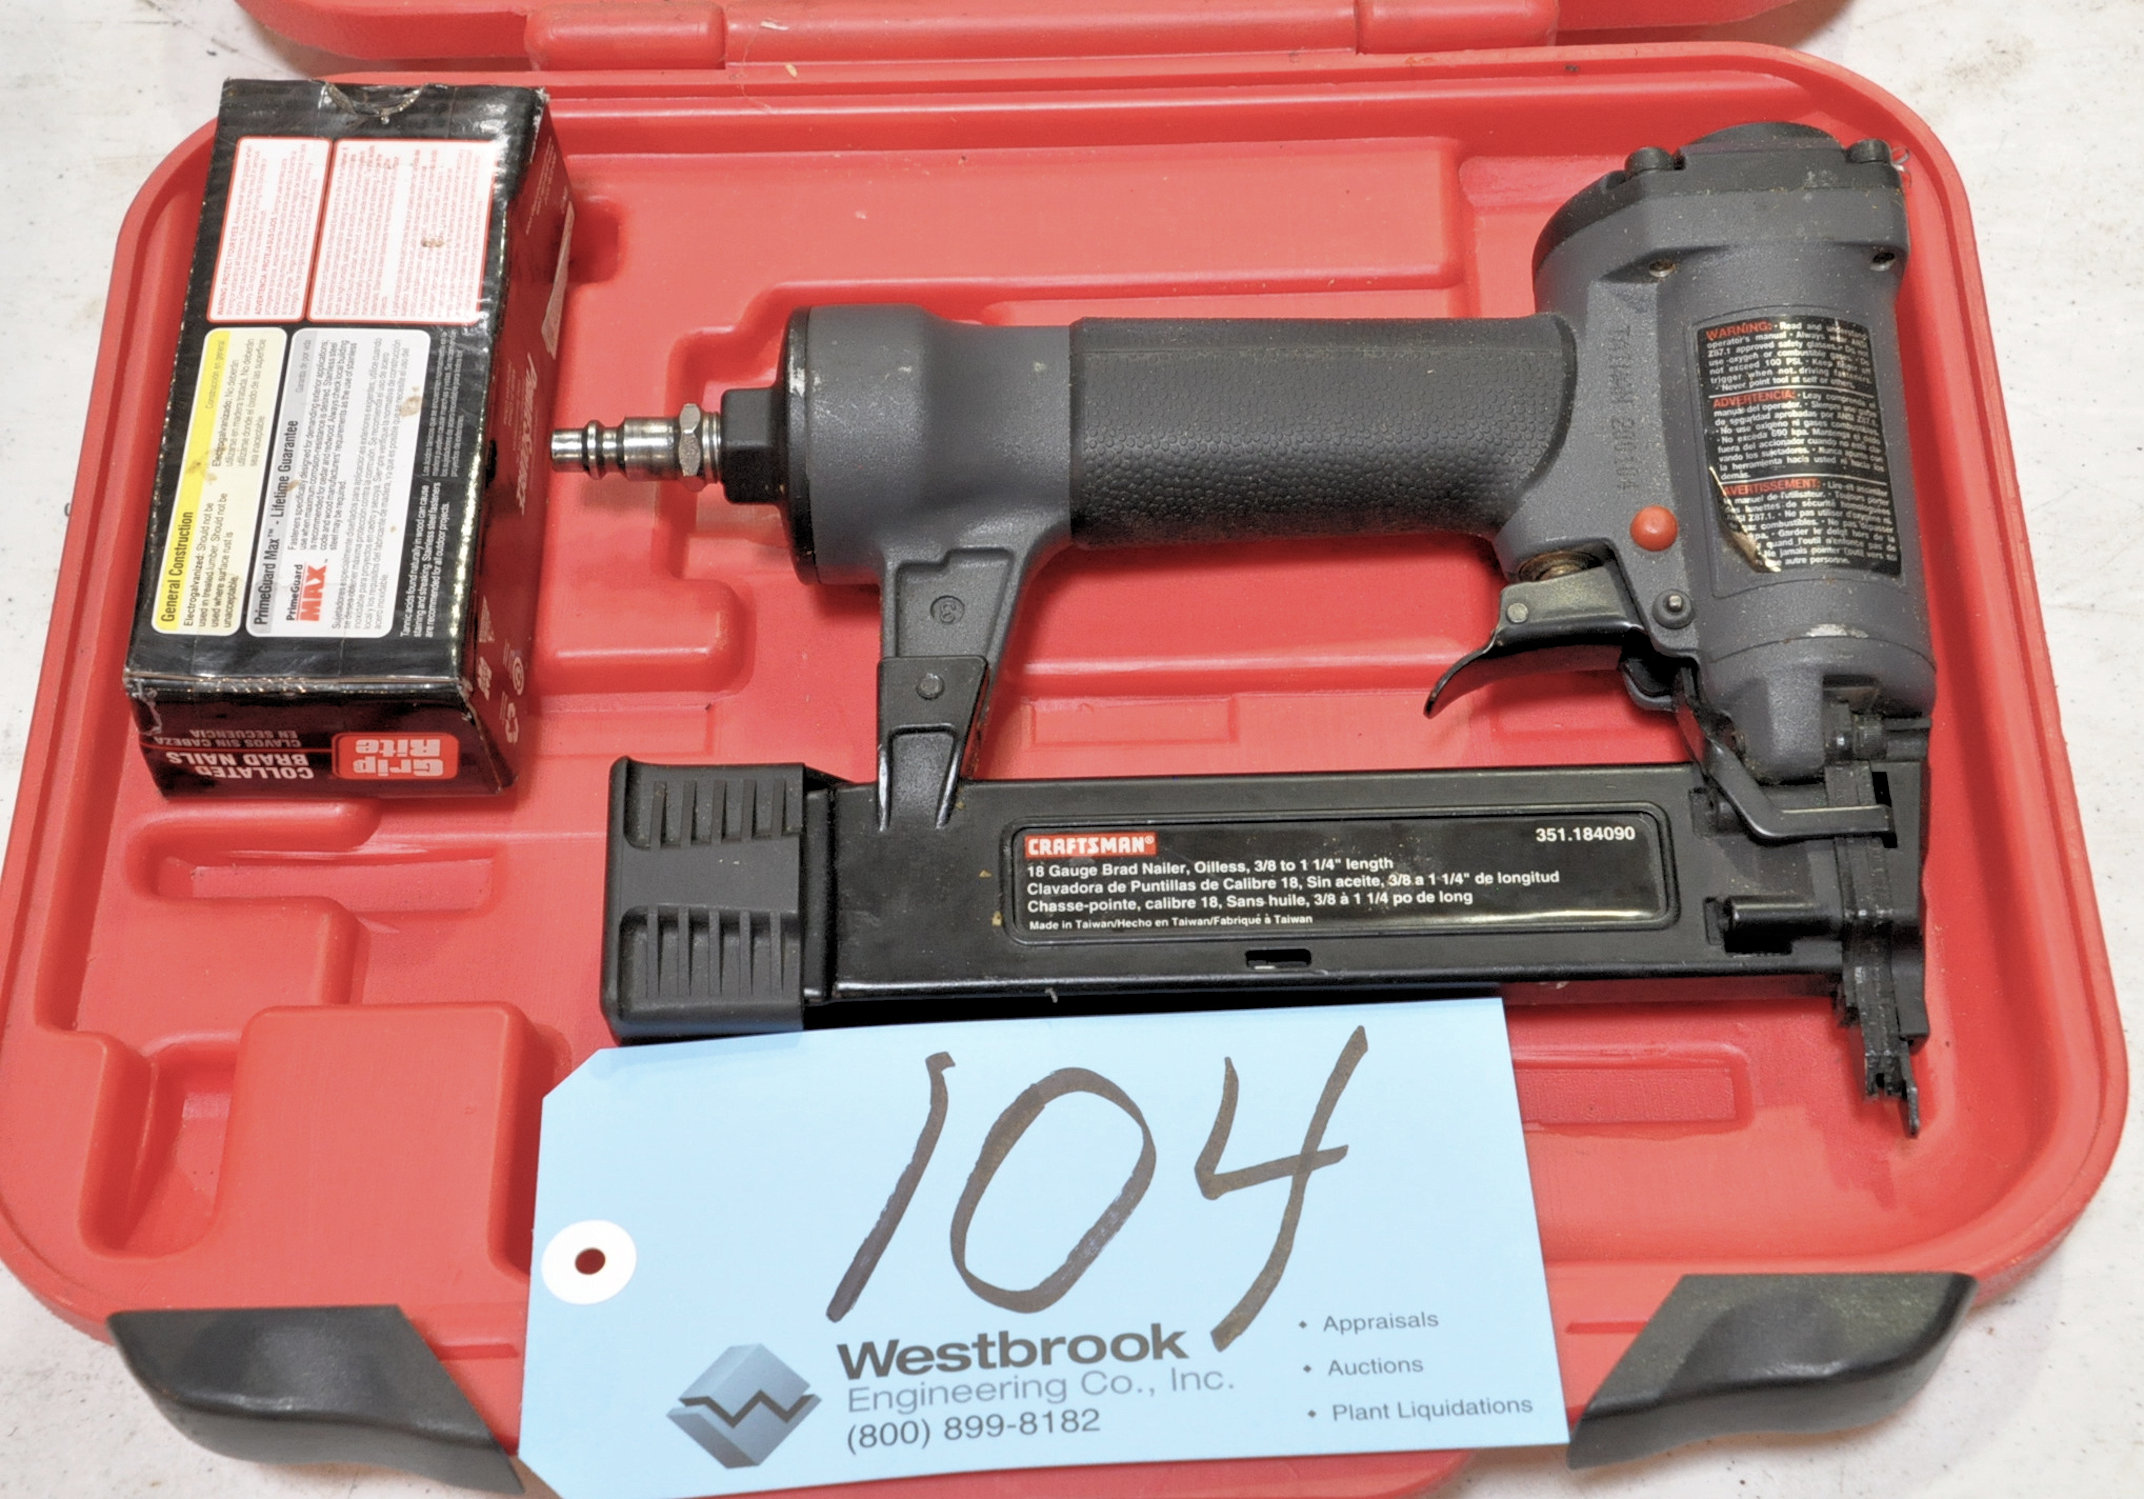 Lot 104 - Craftsman Pneumatic Finish Nailer Gun with Supply and Case